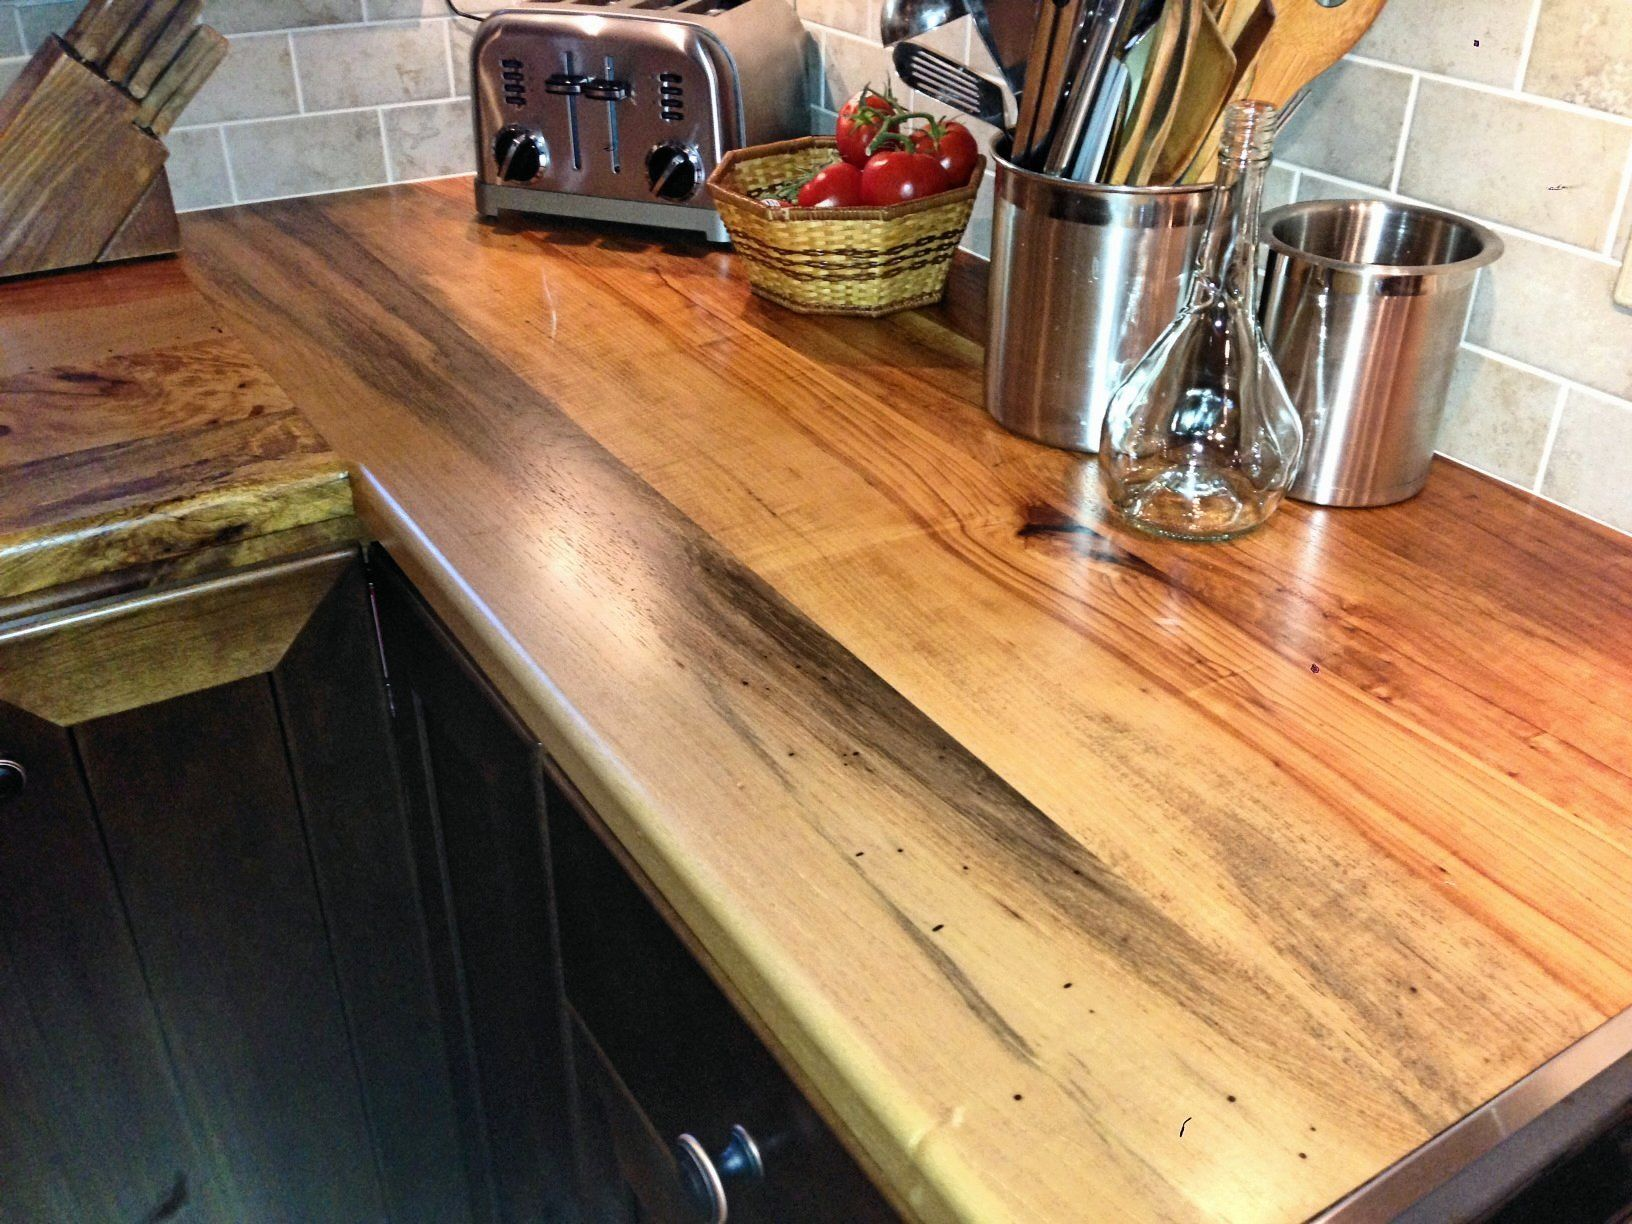 Countertop Joint Sealer : Butt-Joint on a Texas Pecan Wood Countertop. Face Grain Construction ...